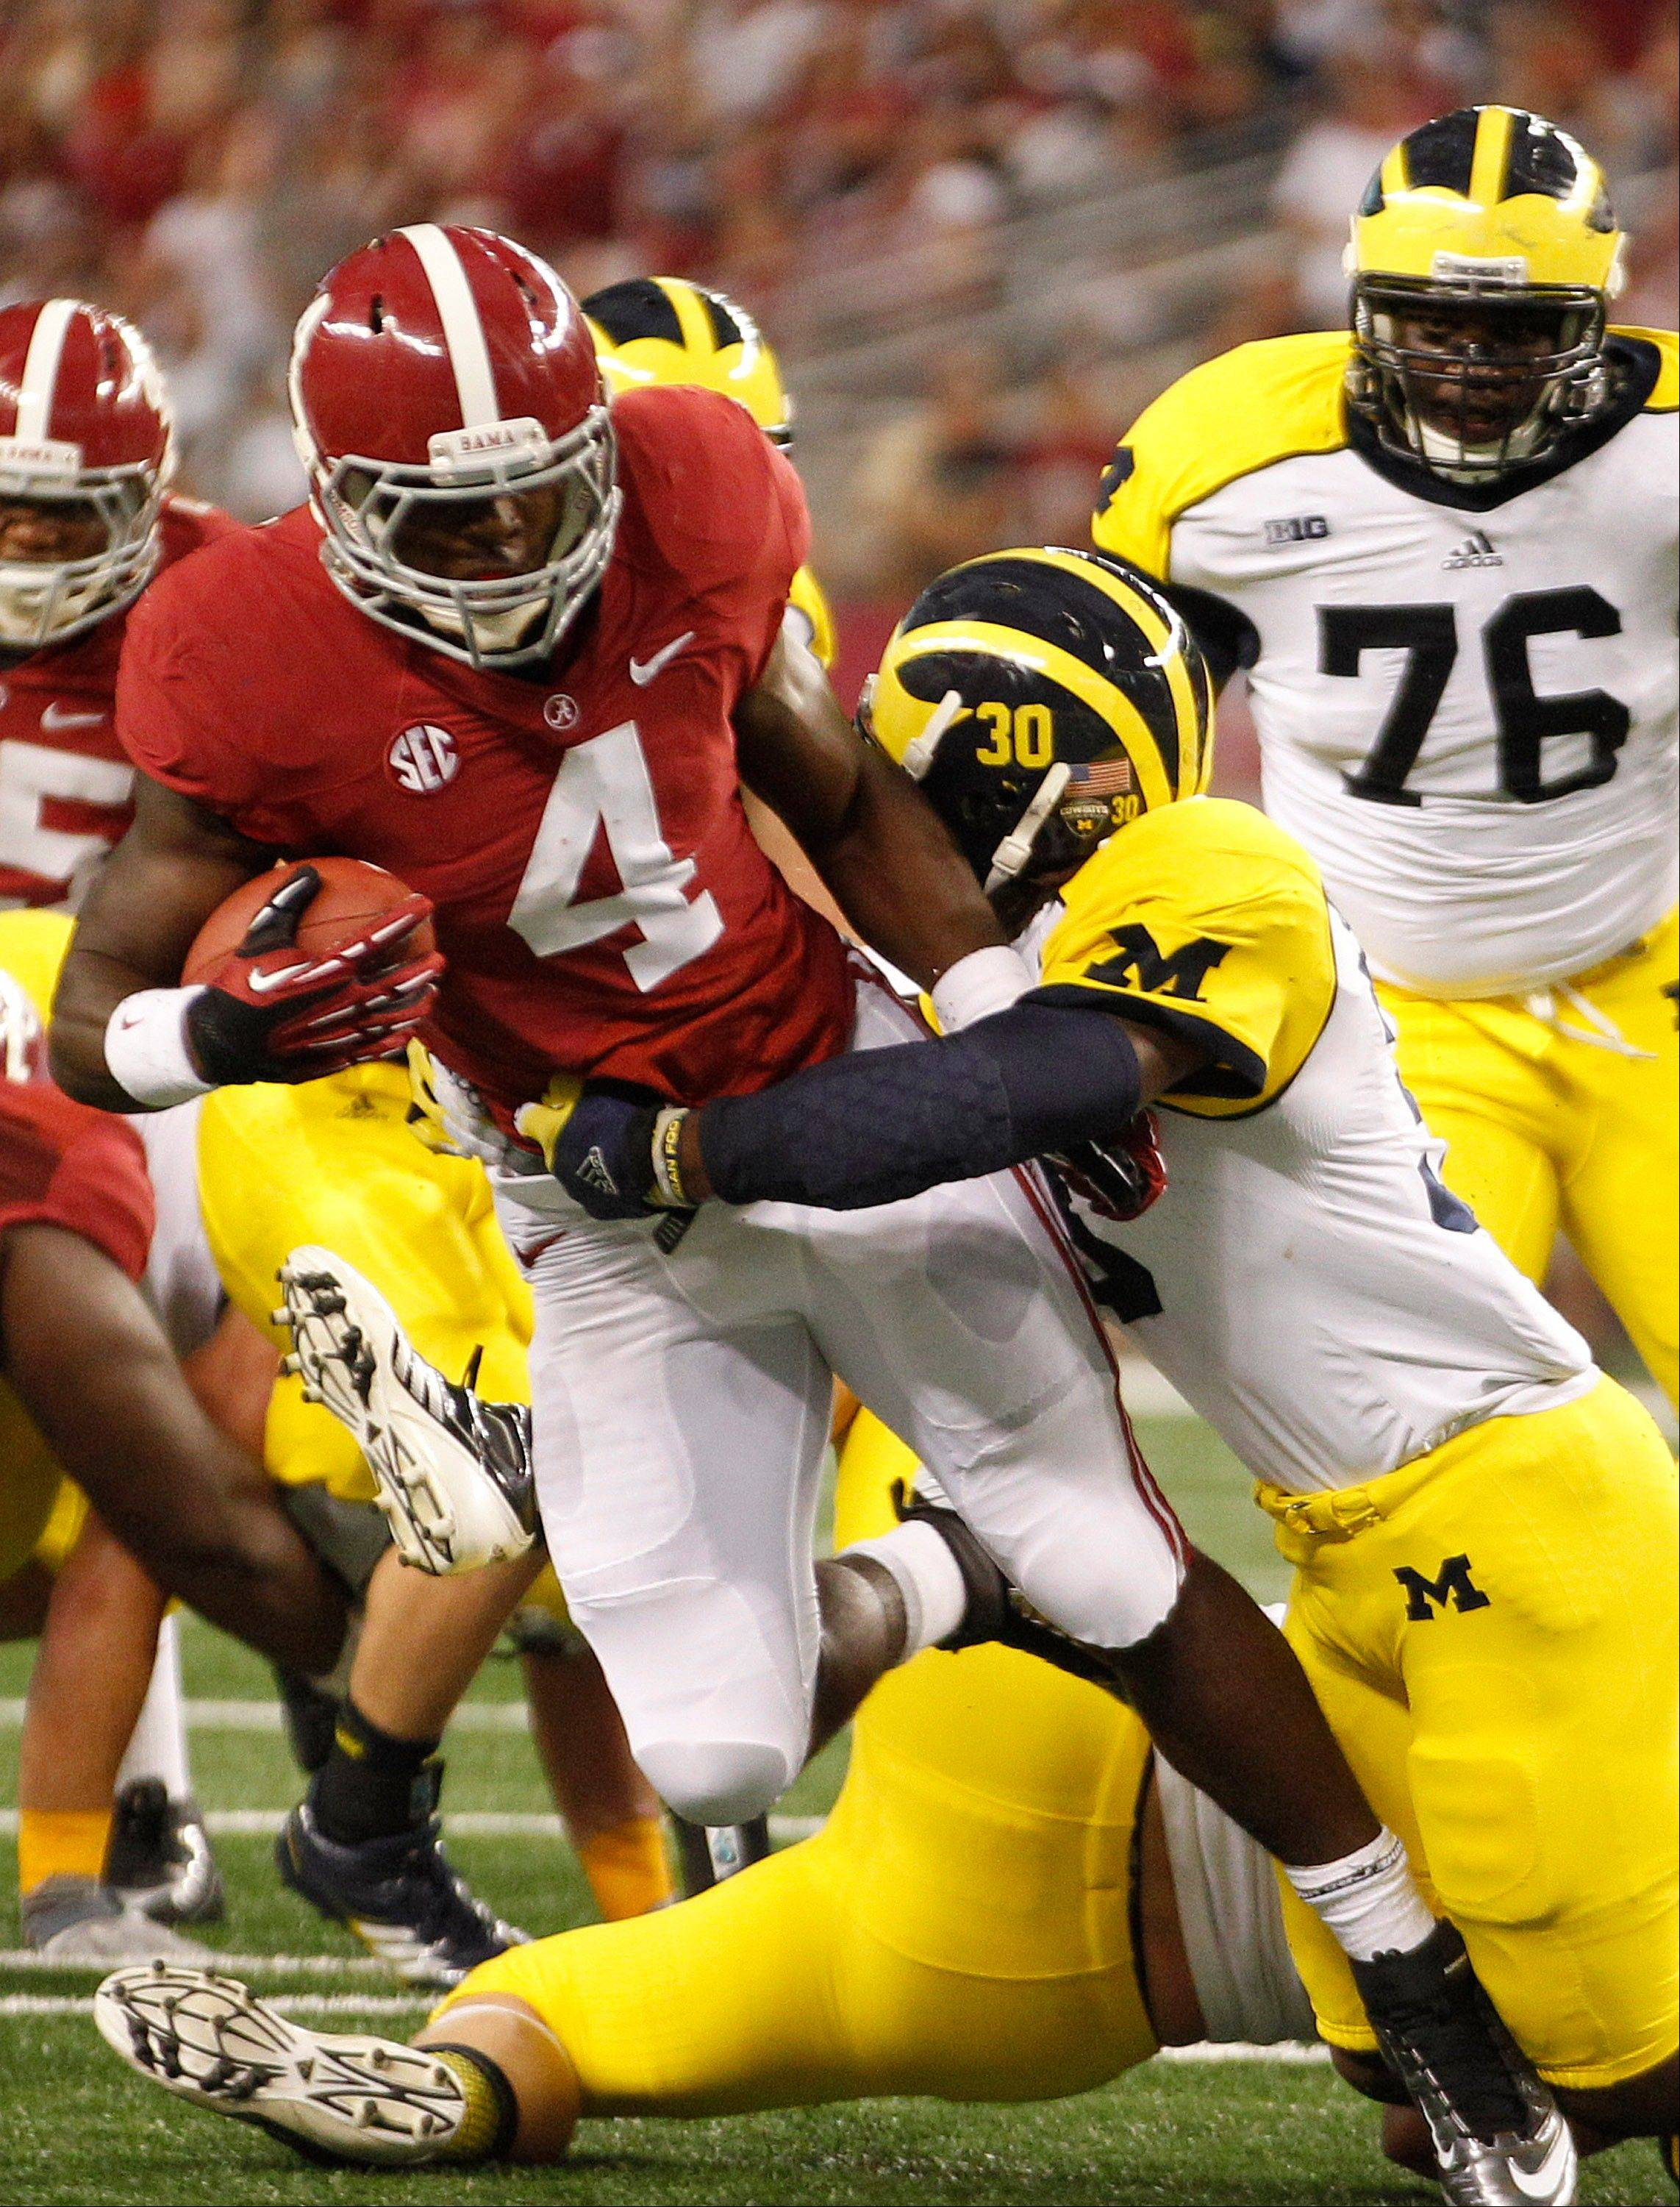 Alabama running back T.J. Yeldon (4) picks up yardage against Michigan safety Thomas Gordon (30) during the first half of an NCAA college football game Saturday at Cowboys Stadium in Arlington, Texas